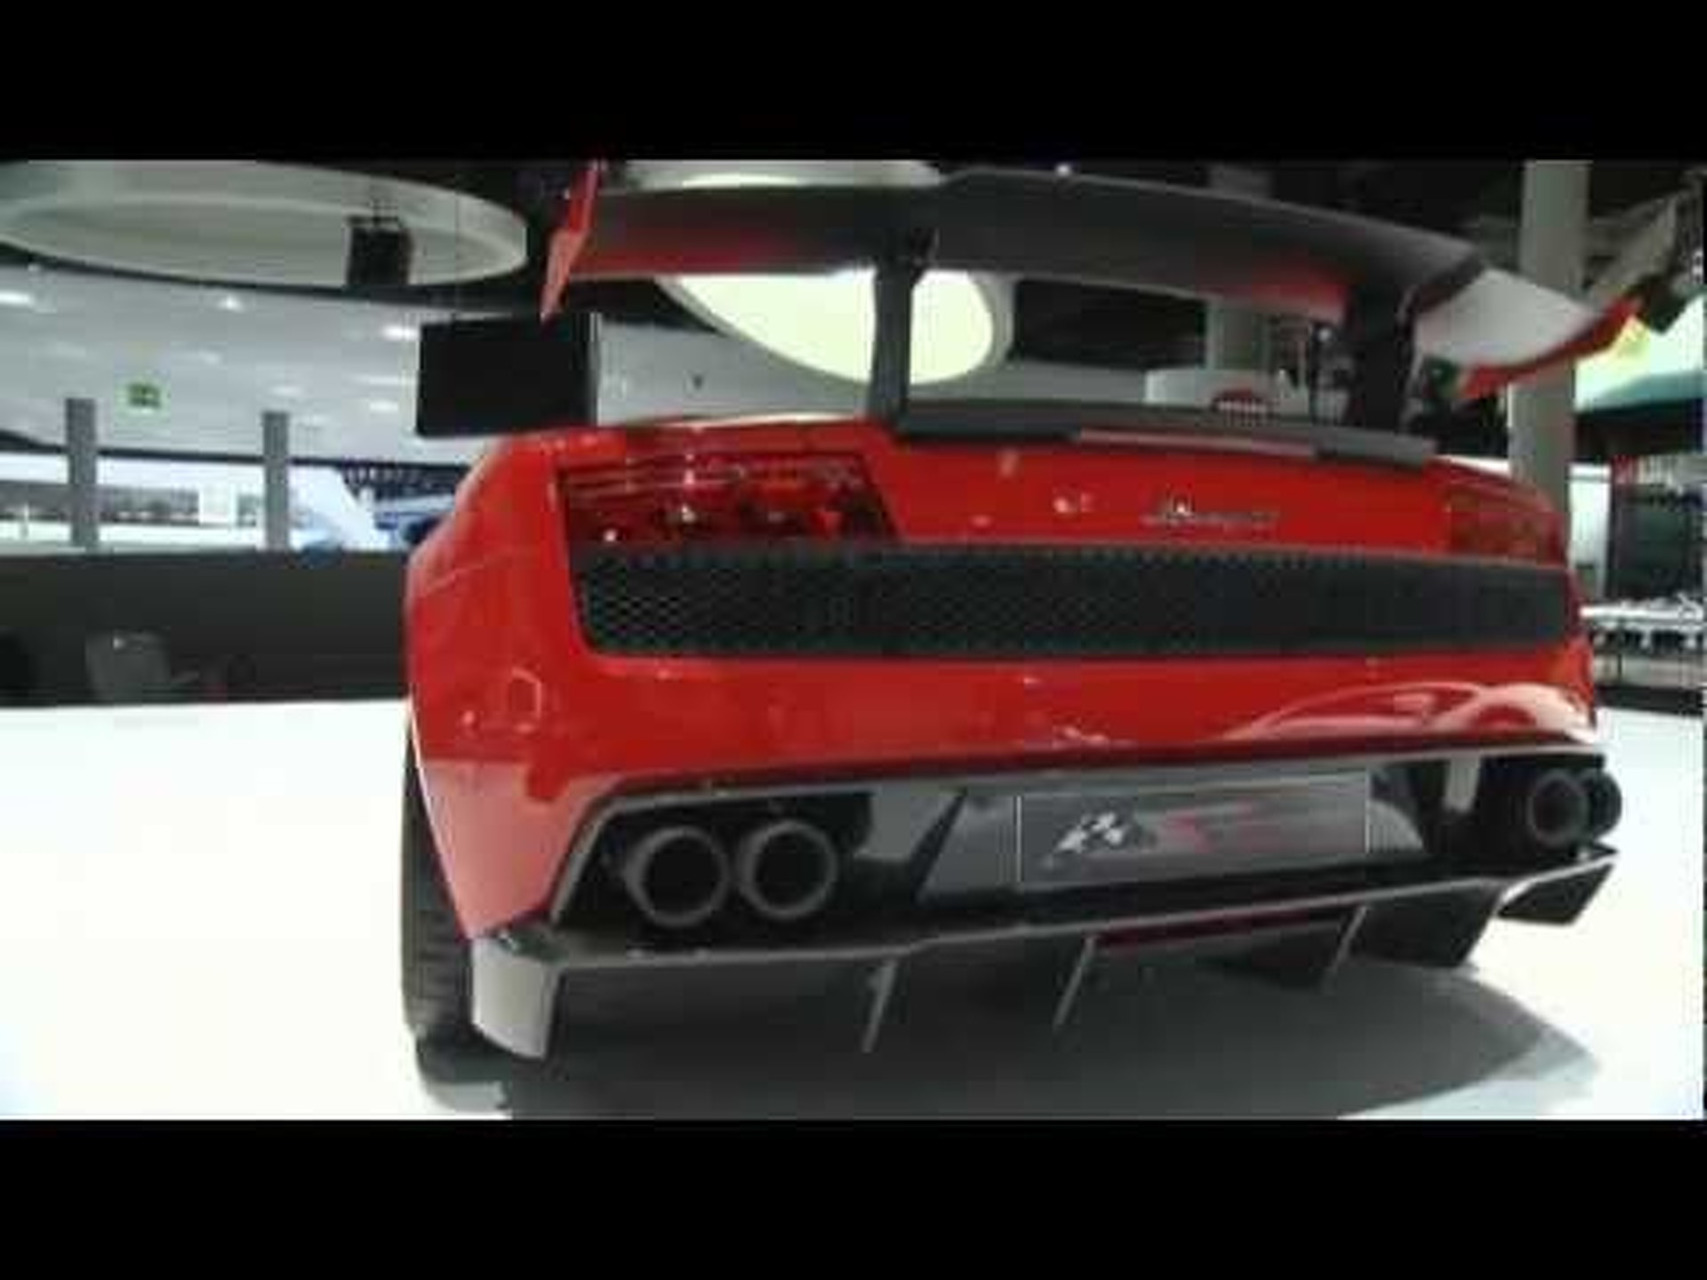 2012 Lamborghini Gallardo LP 570-4 Super Trofeo Stradale Debuts at 2011 IAA in Frankfurt